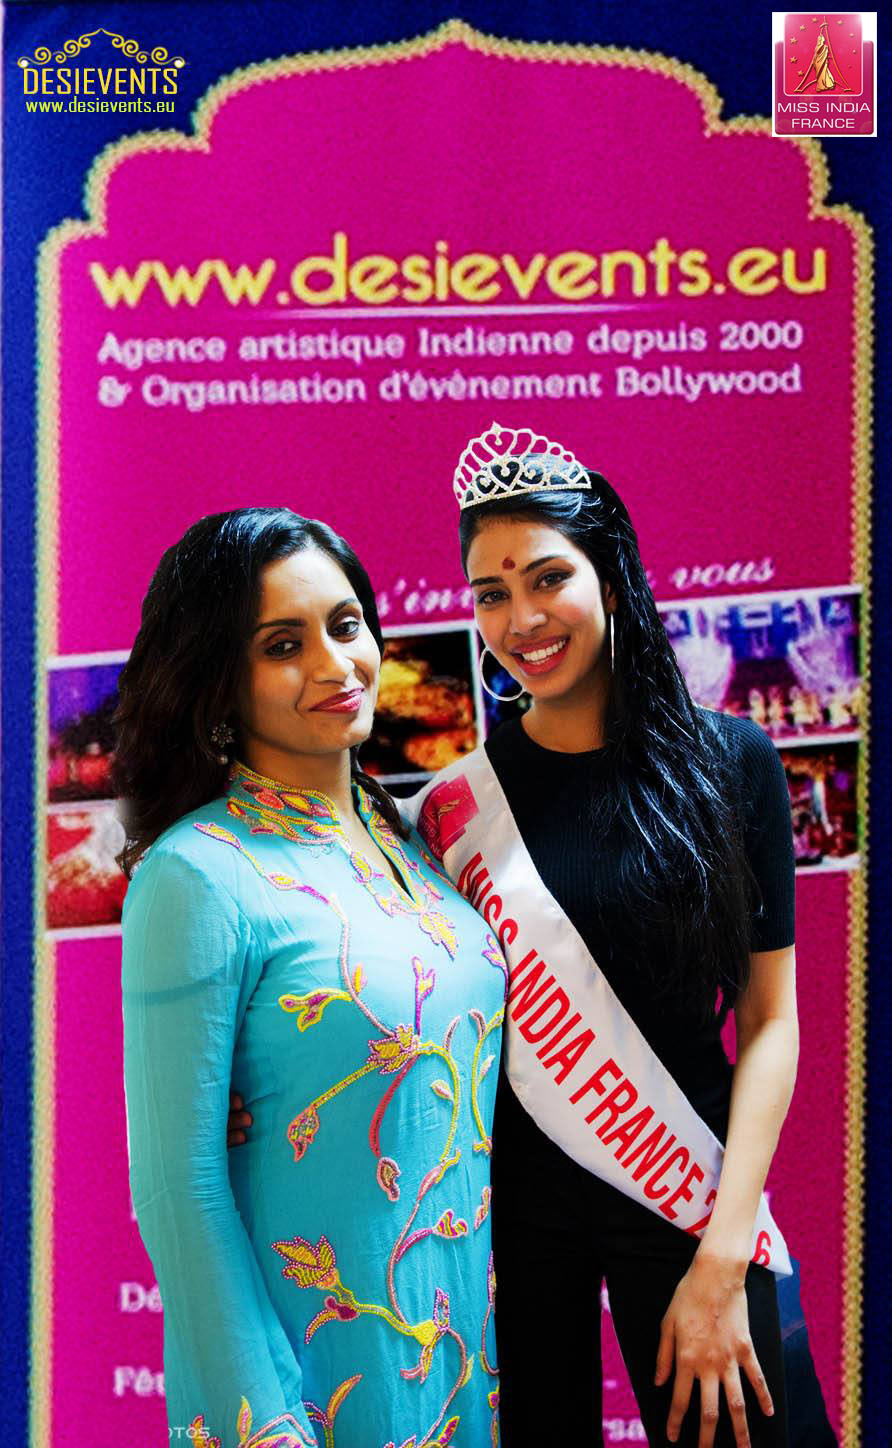 Miss India France avec Bhavna de Bharati show